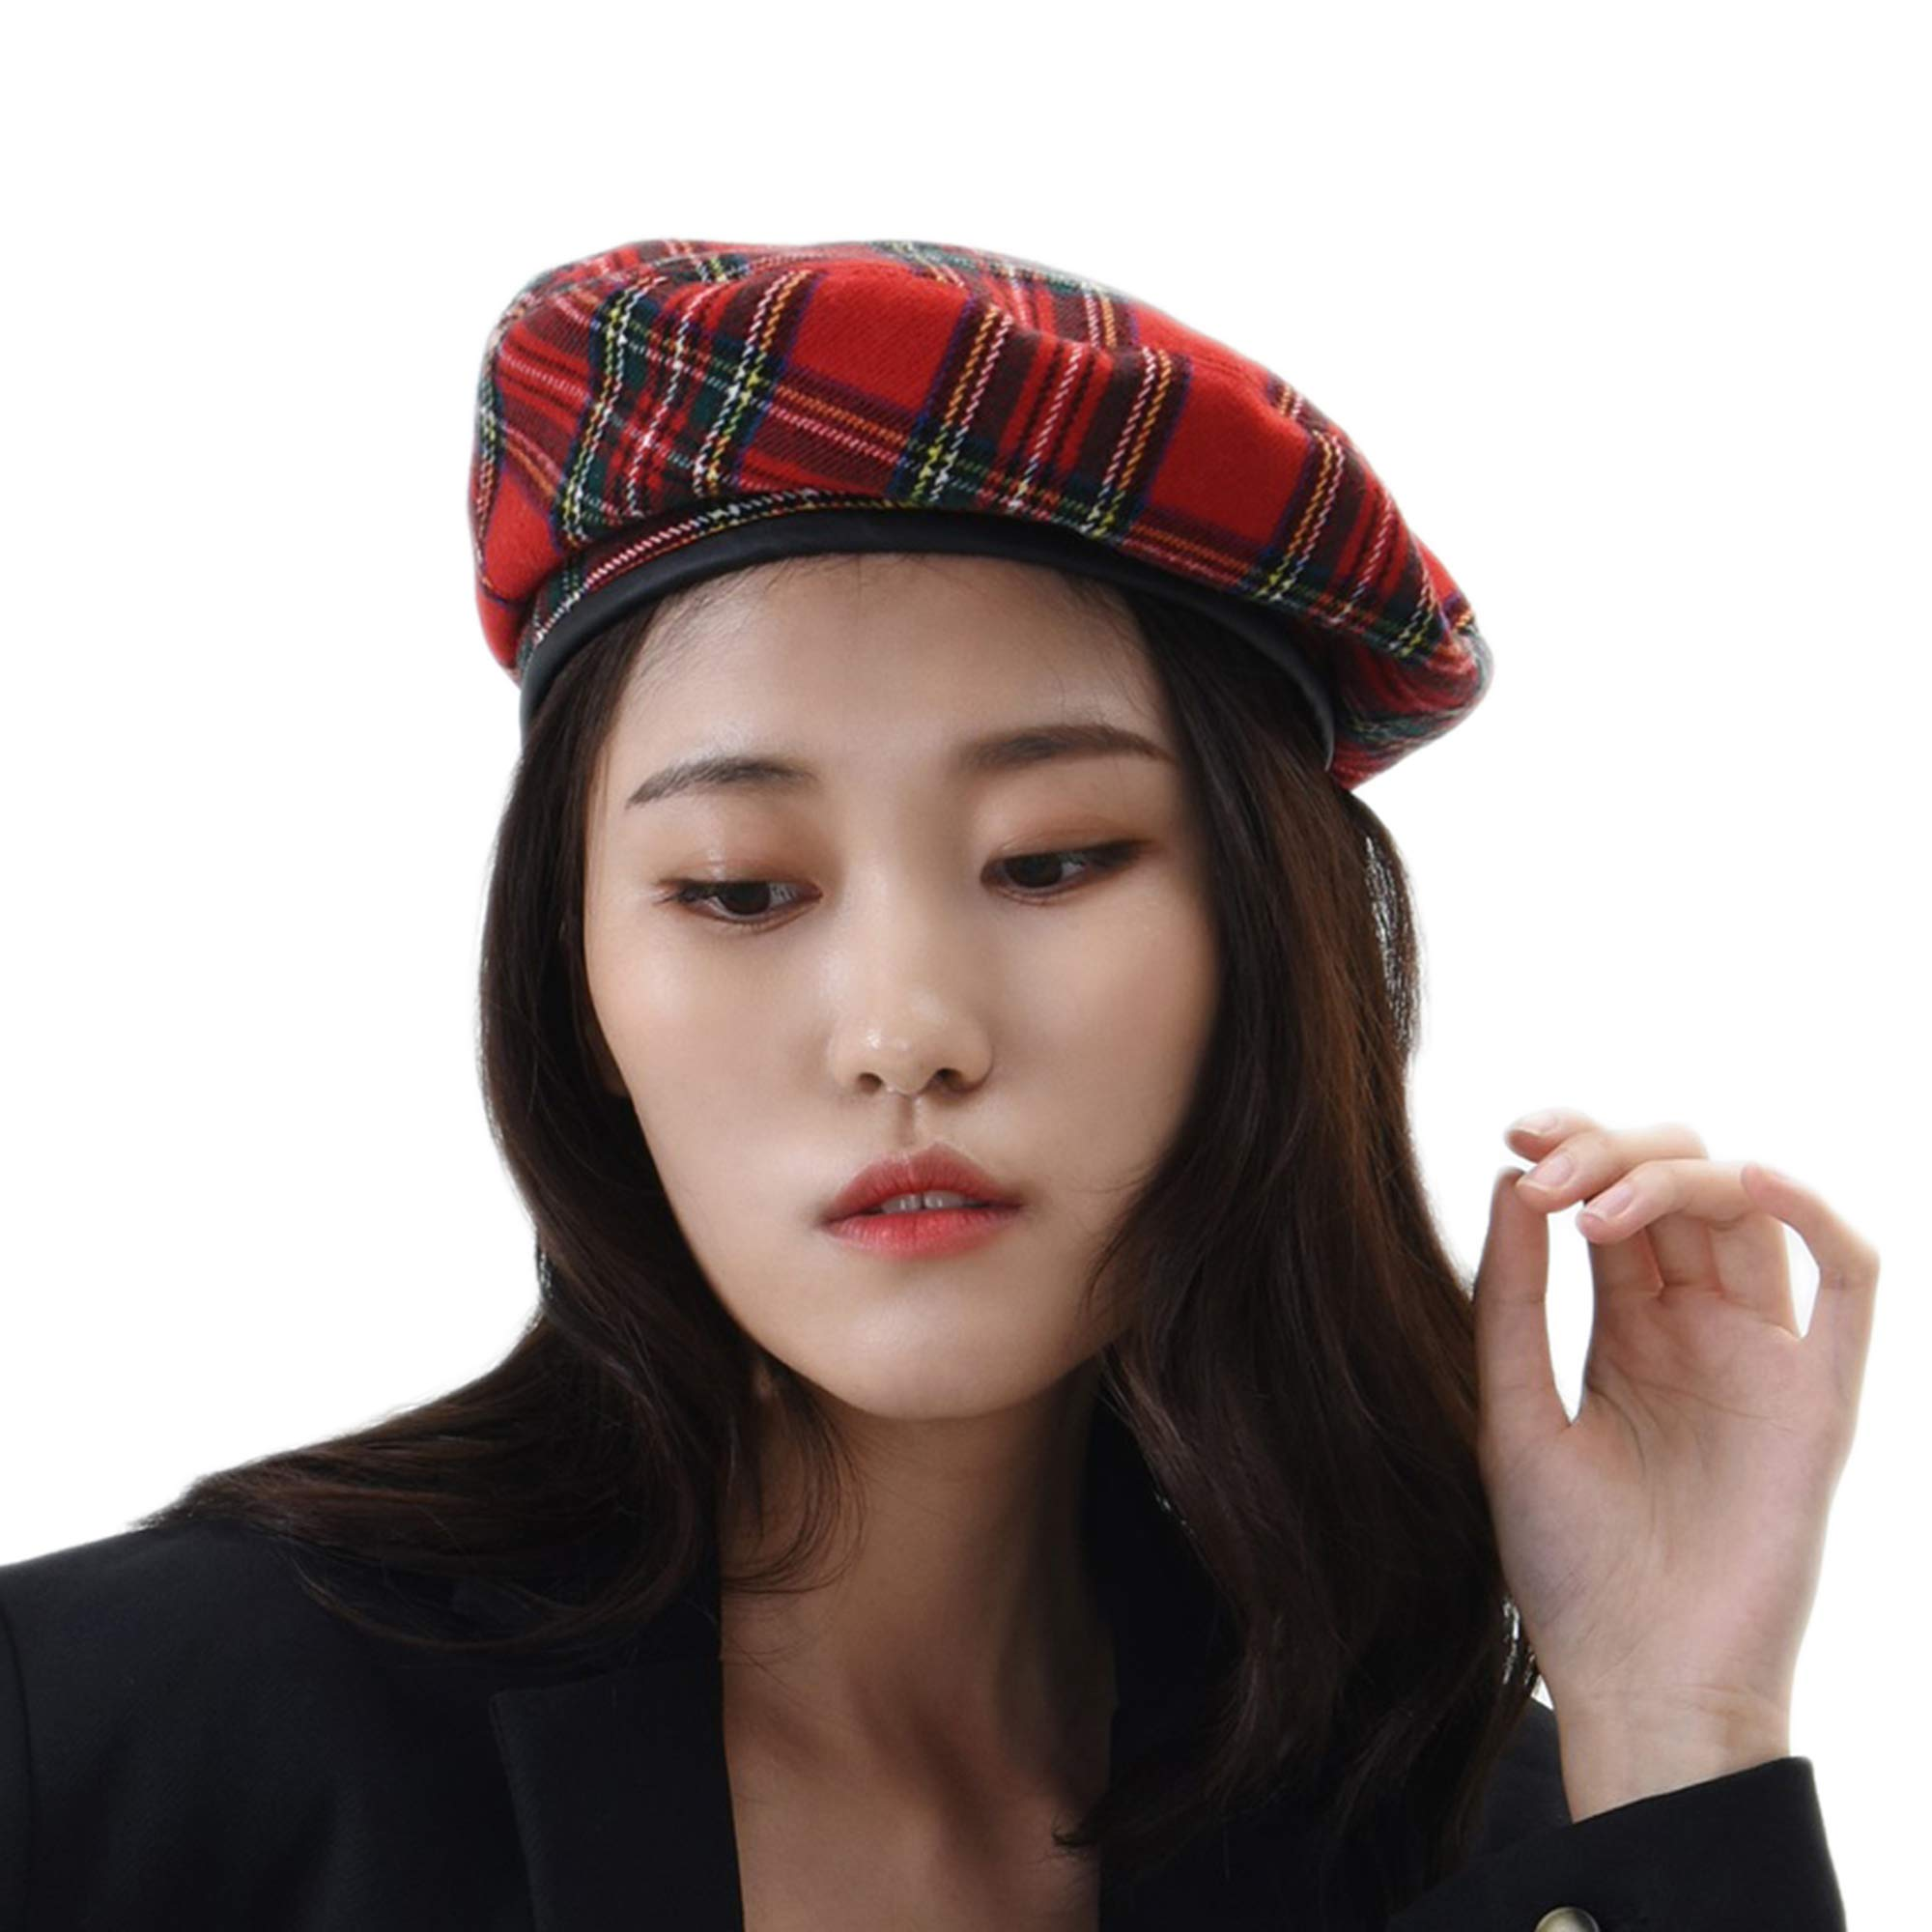 WITHMOONS Wool Beret Hat Tartan Check Leather Sweatband KR9539 (Red)